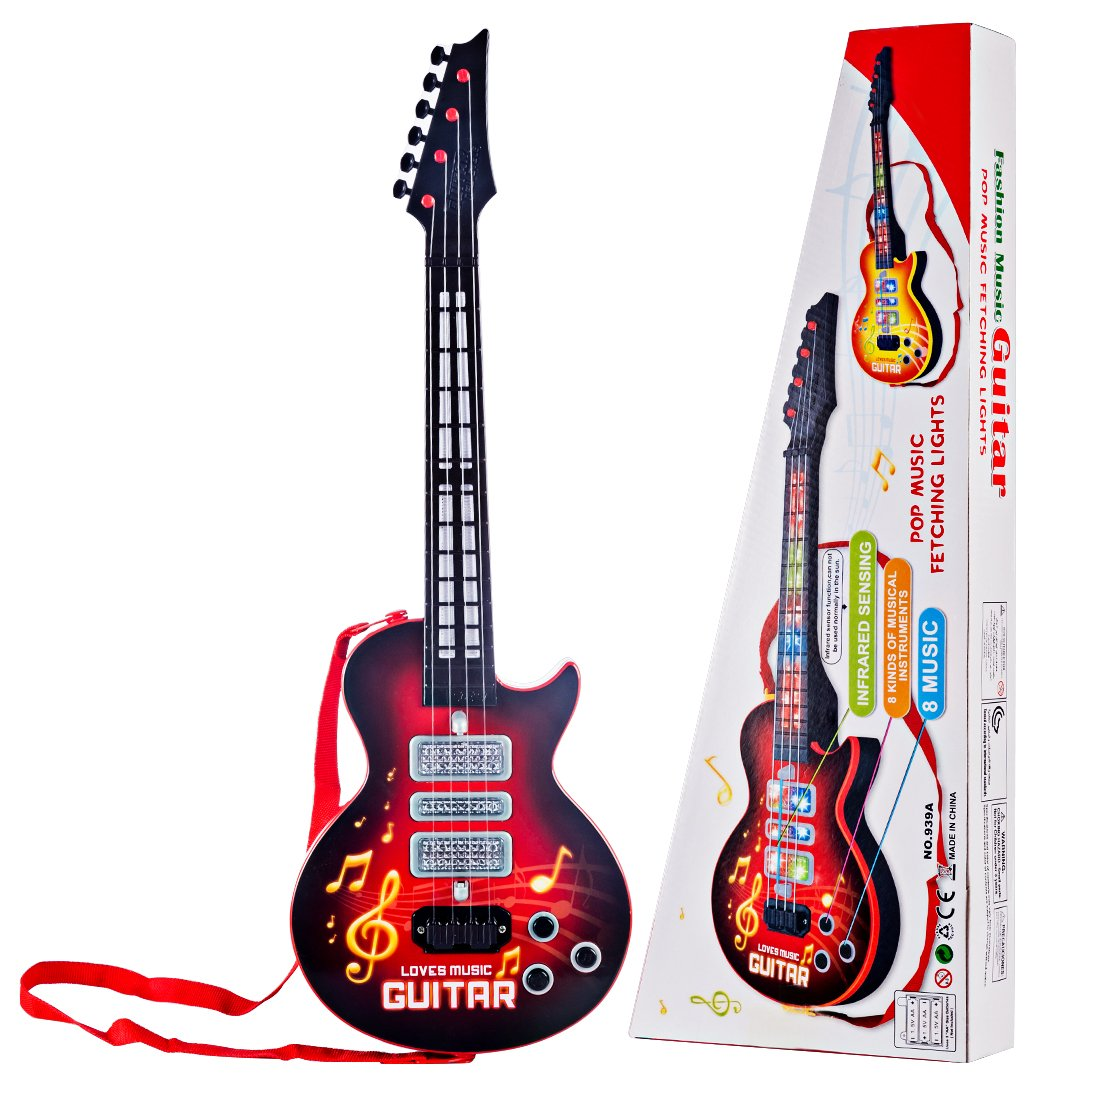 RuiyiF Kids Guitar, Beginner Electric Toy Guitar for Boys Girls Toddlers 21 Inch (Red)